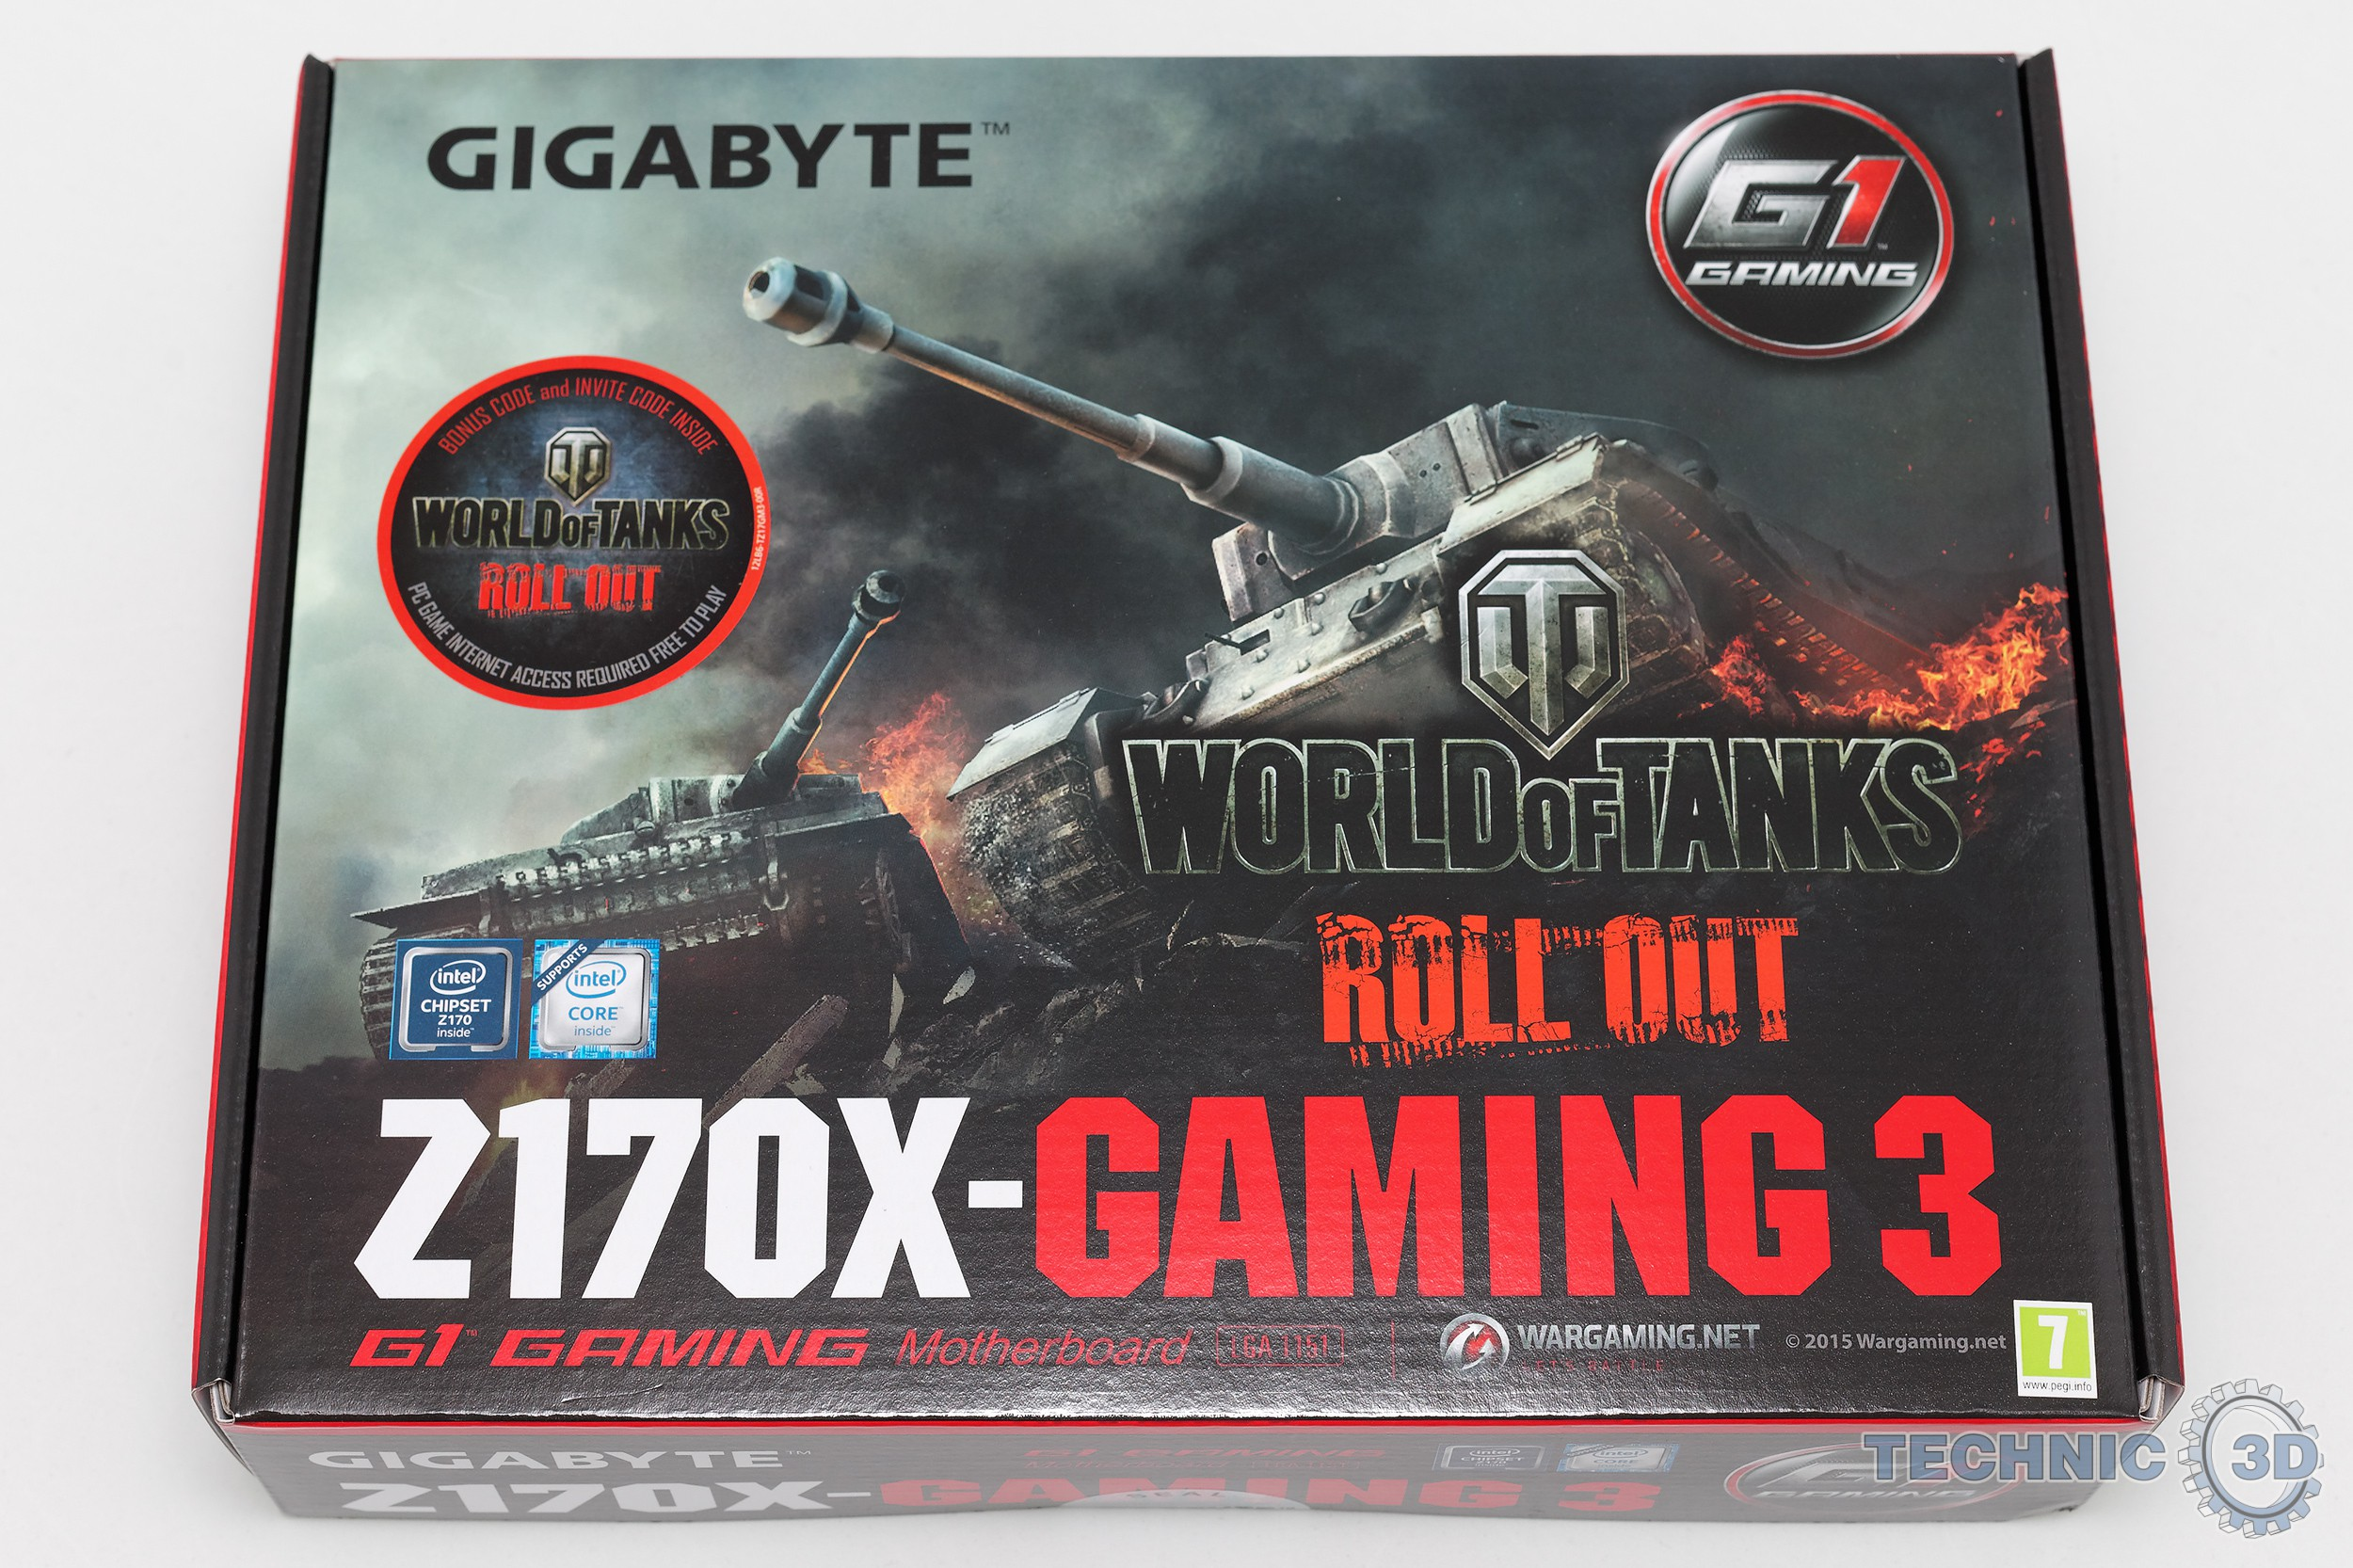 Gigabyte Z170X-Gaming 3 Mainboard im Test | Review | Technic3D